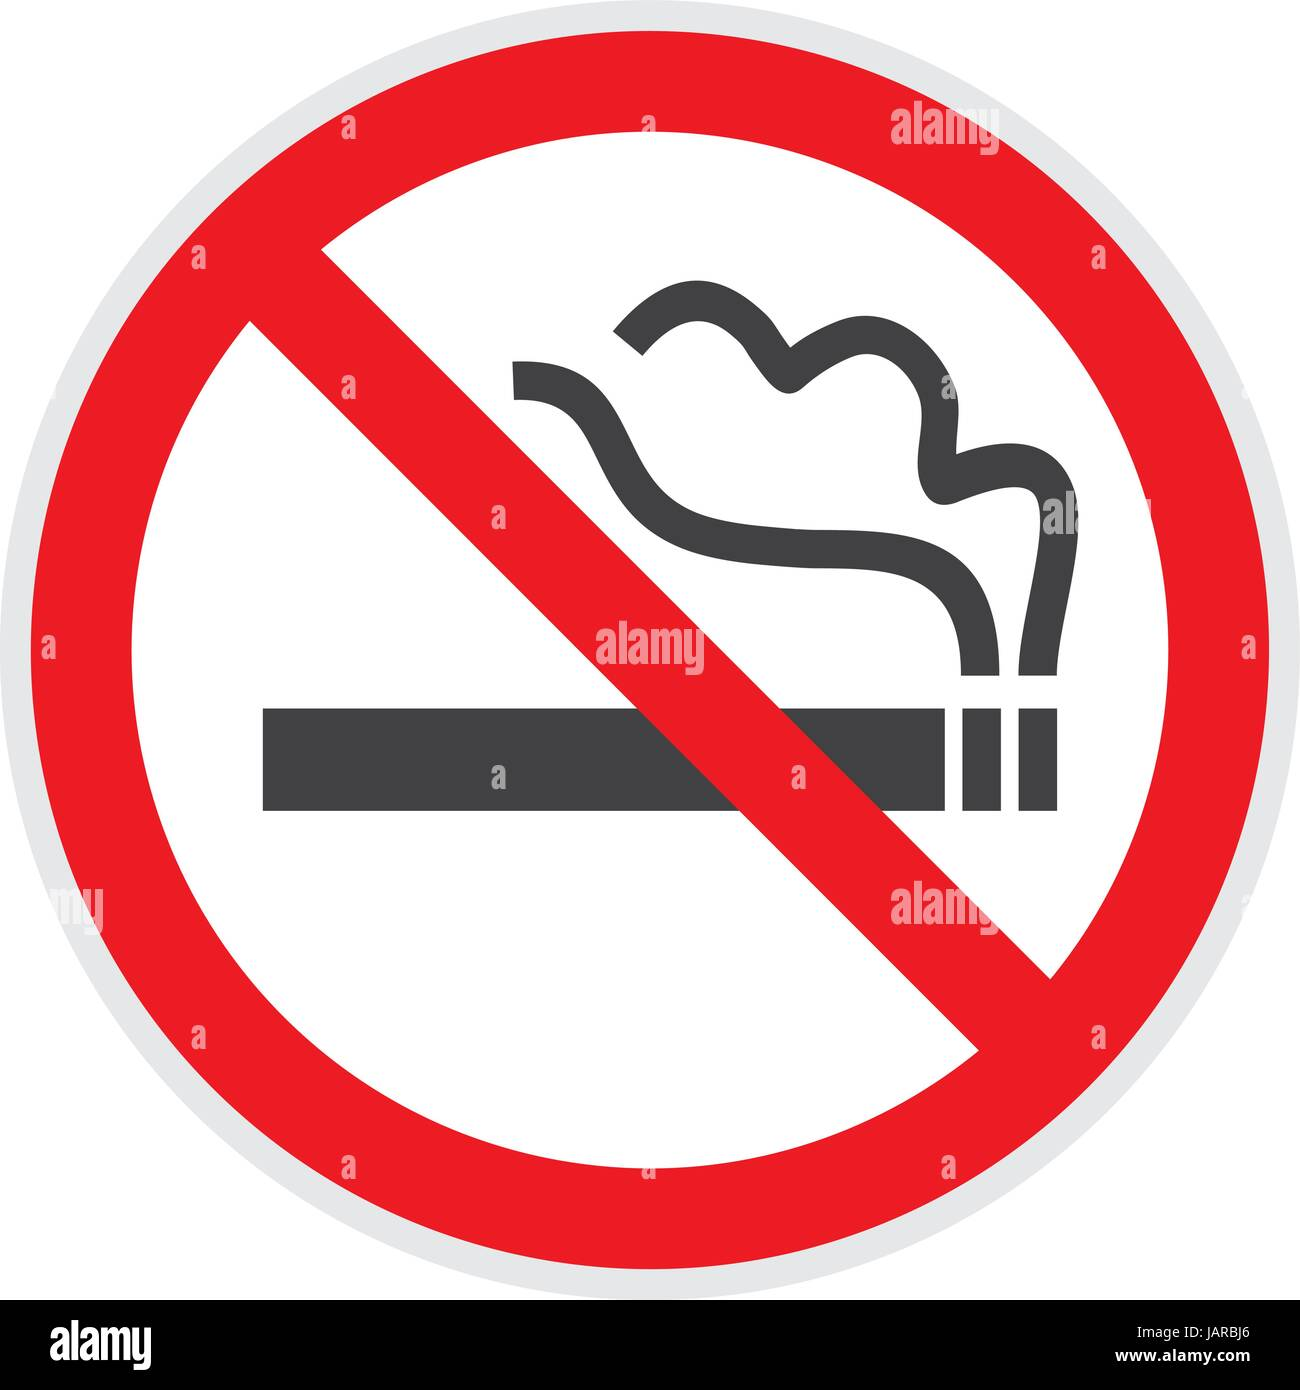 No smoking sign in vector depicting banned activities stock vector no smoking sign in vector depicting banned activities biocorpaavc Image collections